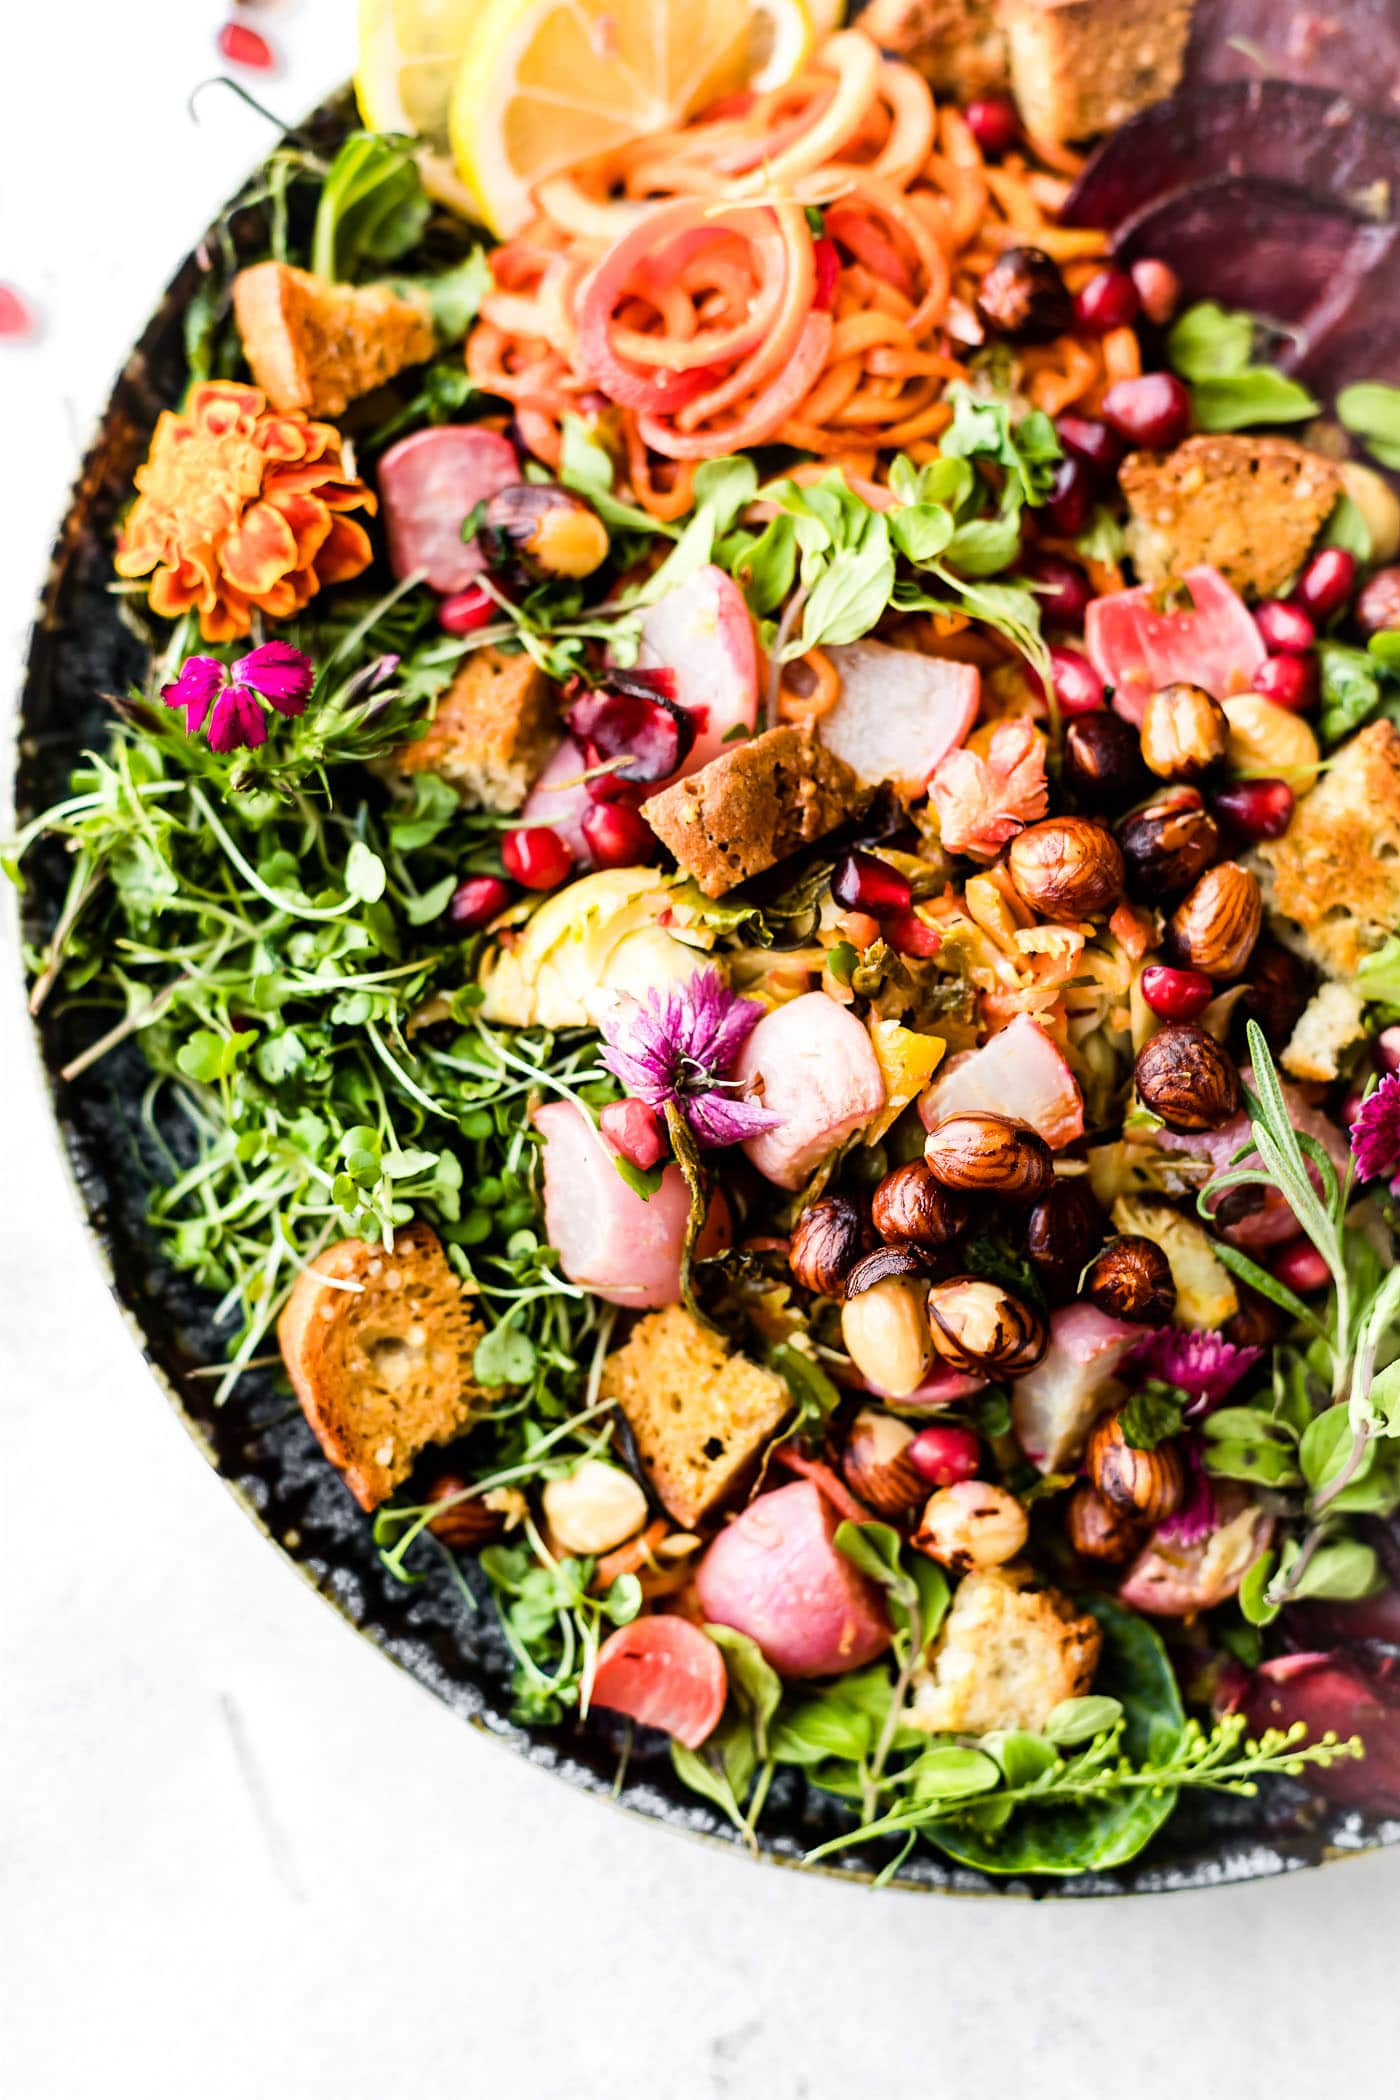 ROASTED VEGETABLE PANZANELLA FALL SALAD. An Autumn inspired dish to make the most of those seasonal vegetables. Nourishing, gluten free, deliciously dairy free, simple to make!